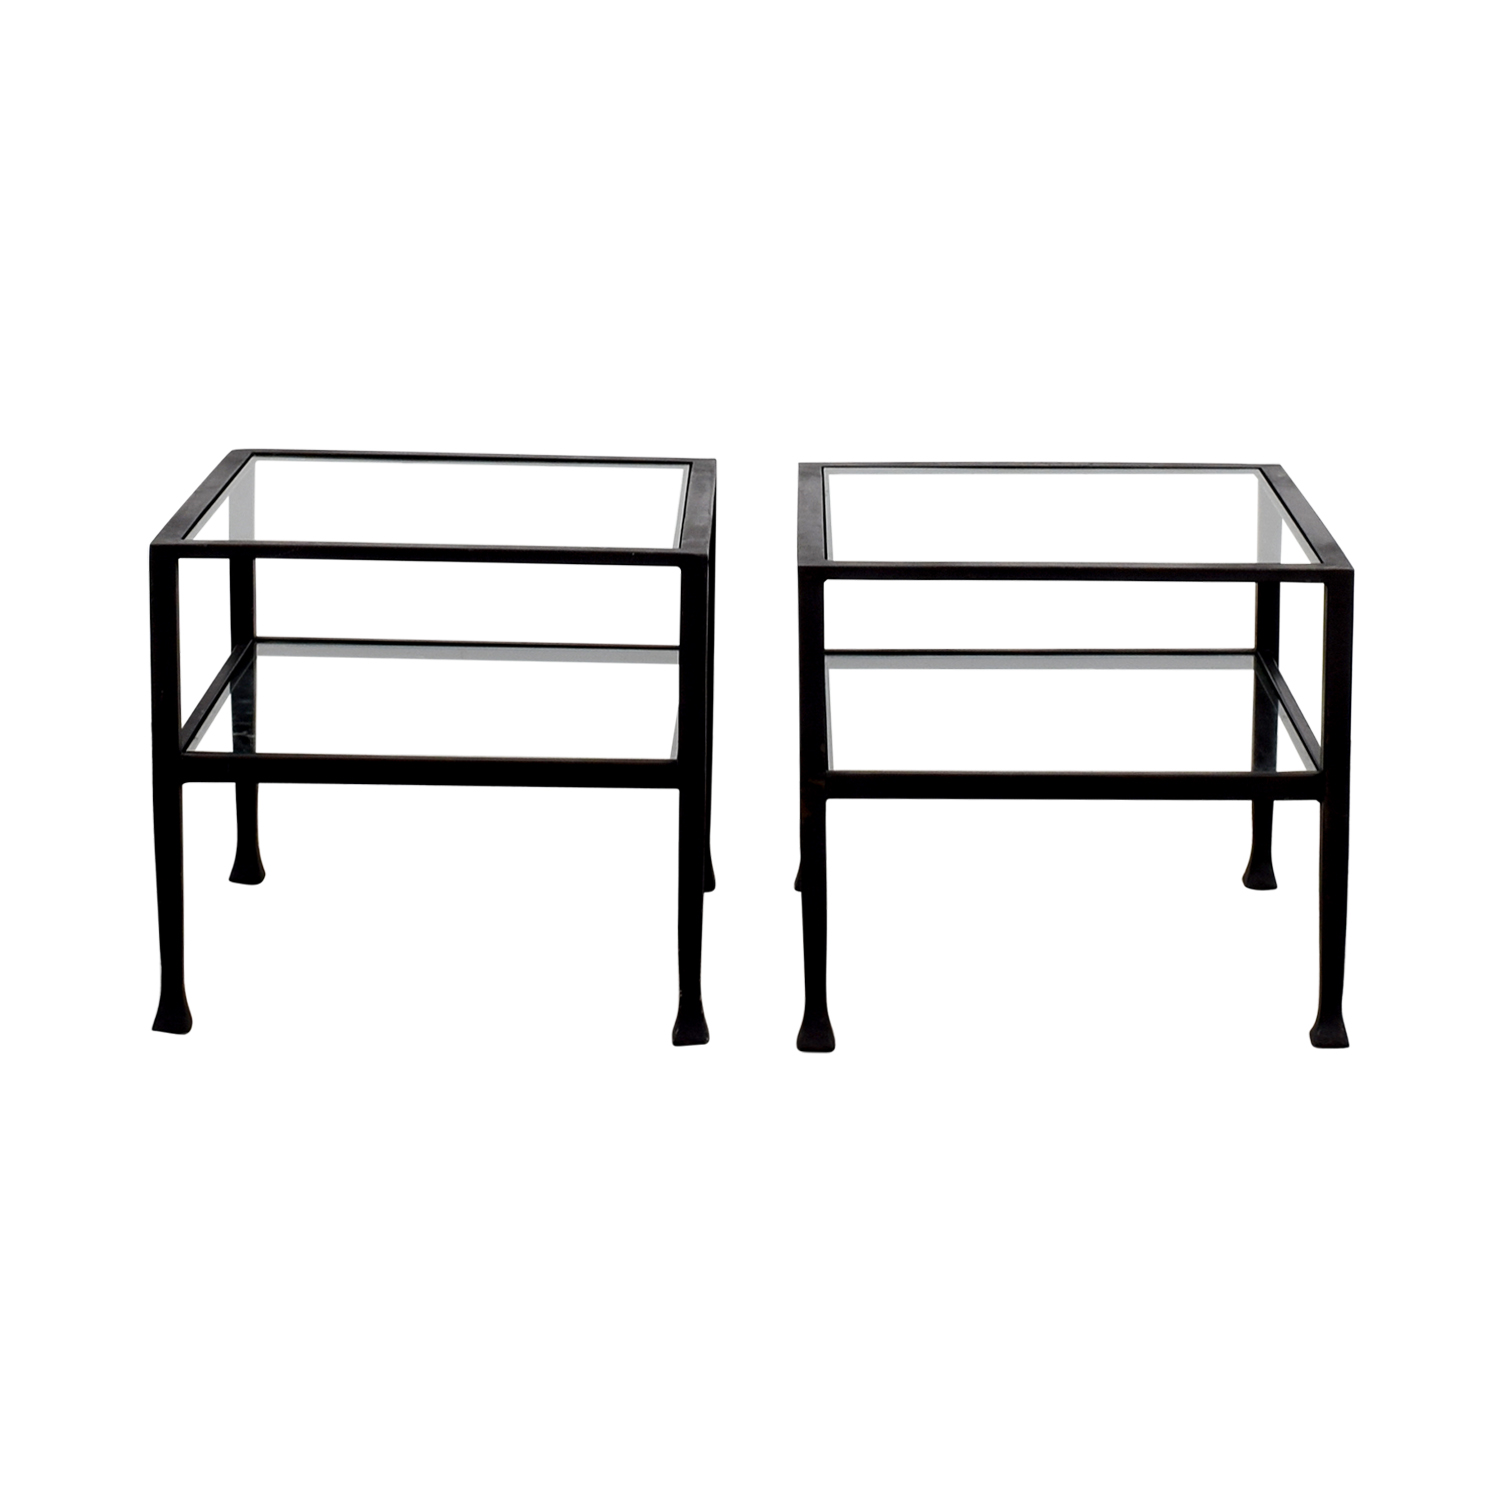 Pottery Barn Pottery Barn Glass and Black Frame Side Tables nyc